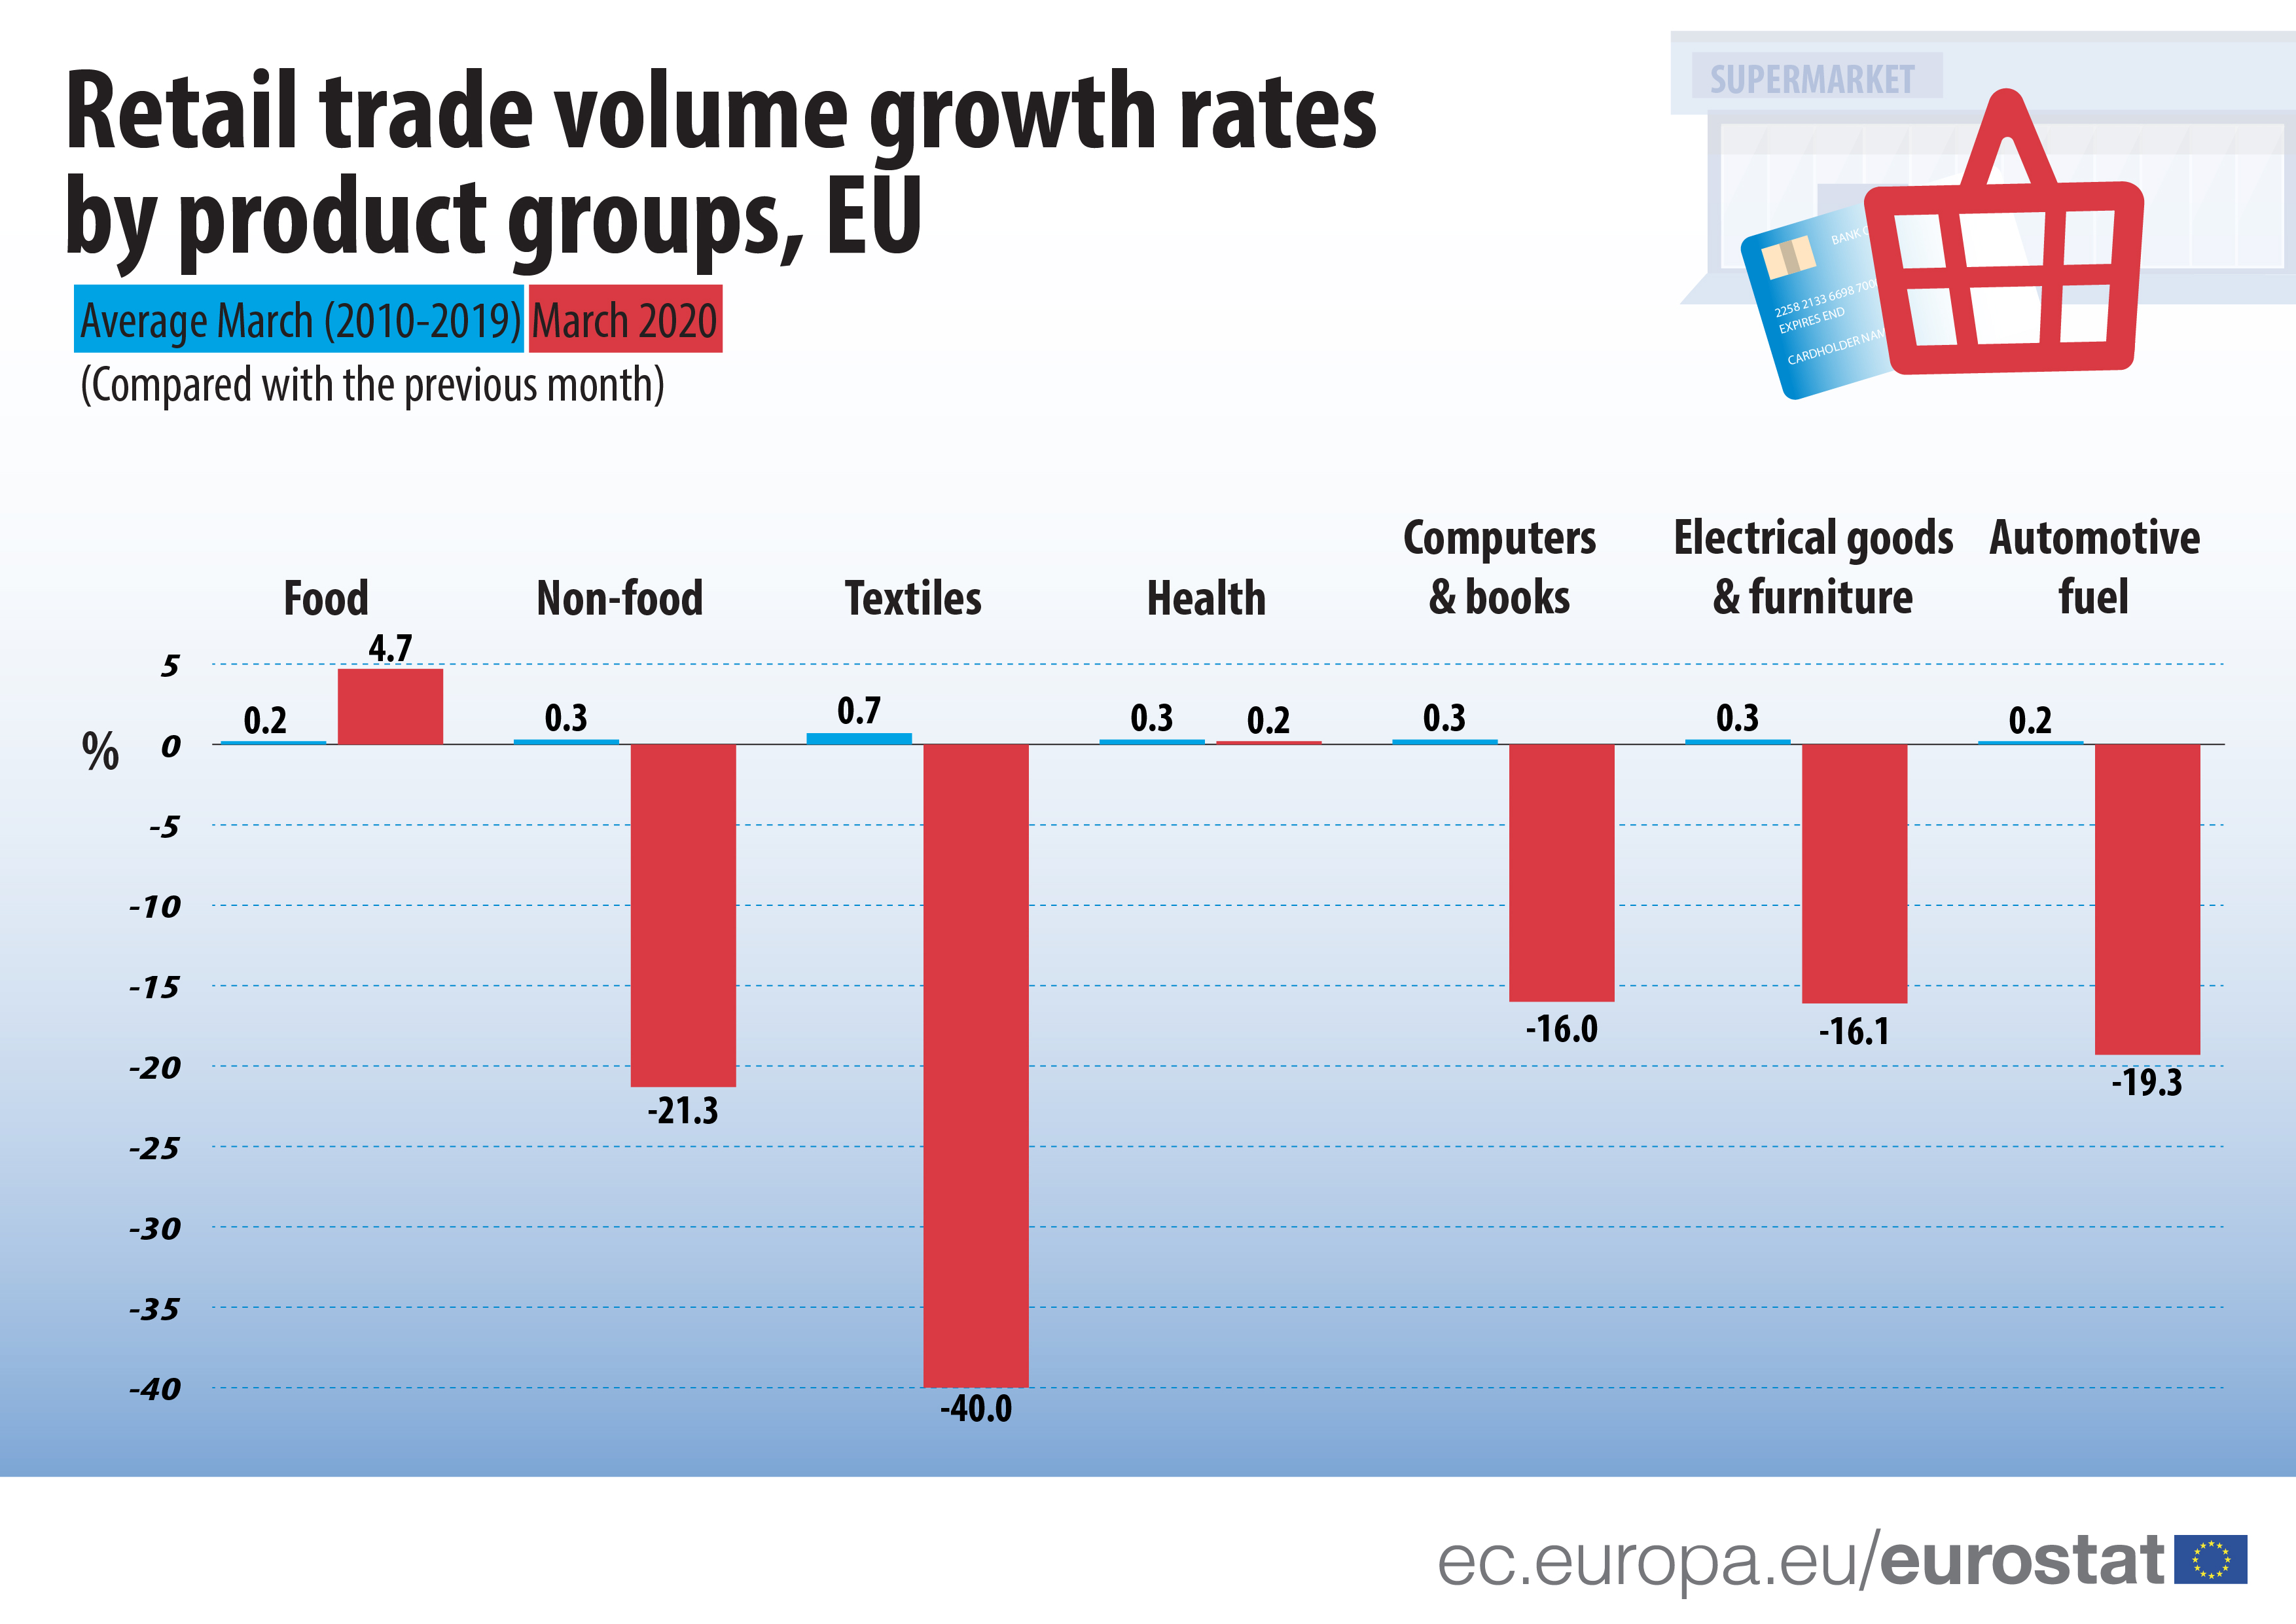 Retail trade volume growth rates according to product groups - average March (2010-2019) and March 2020